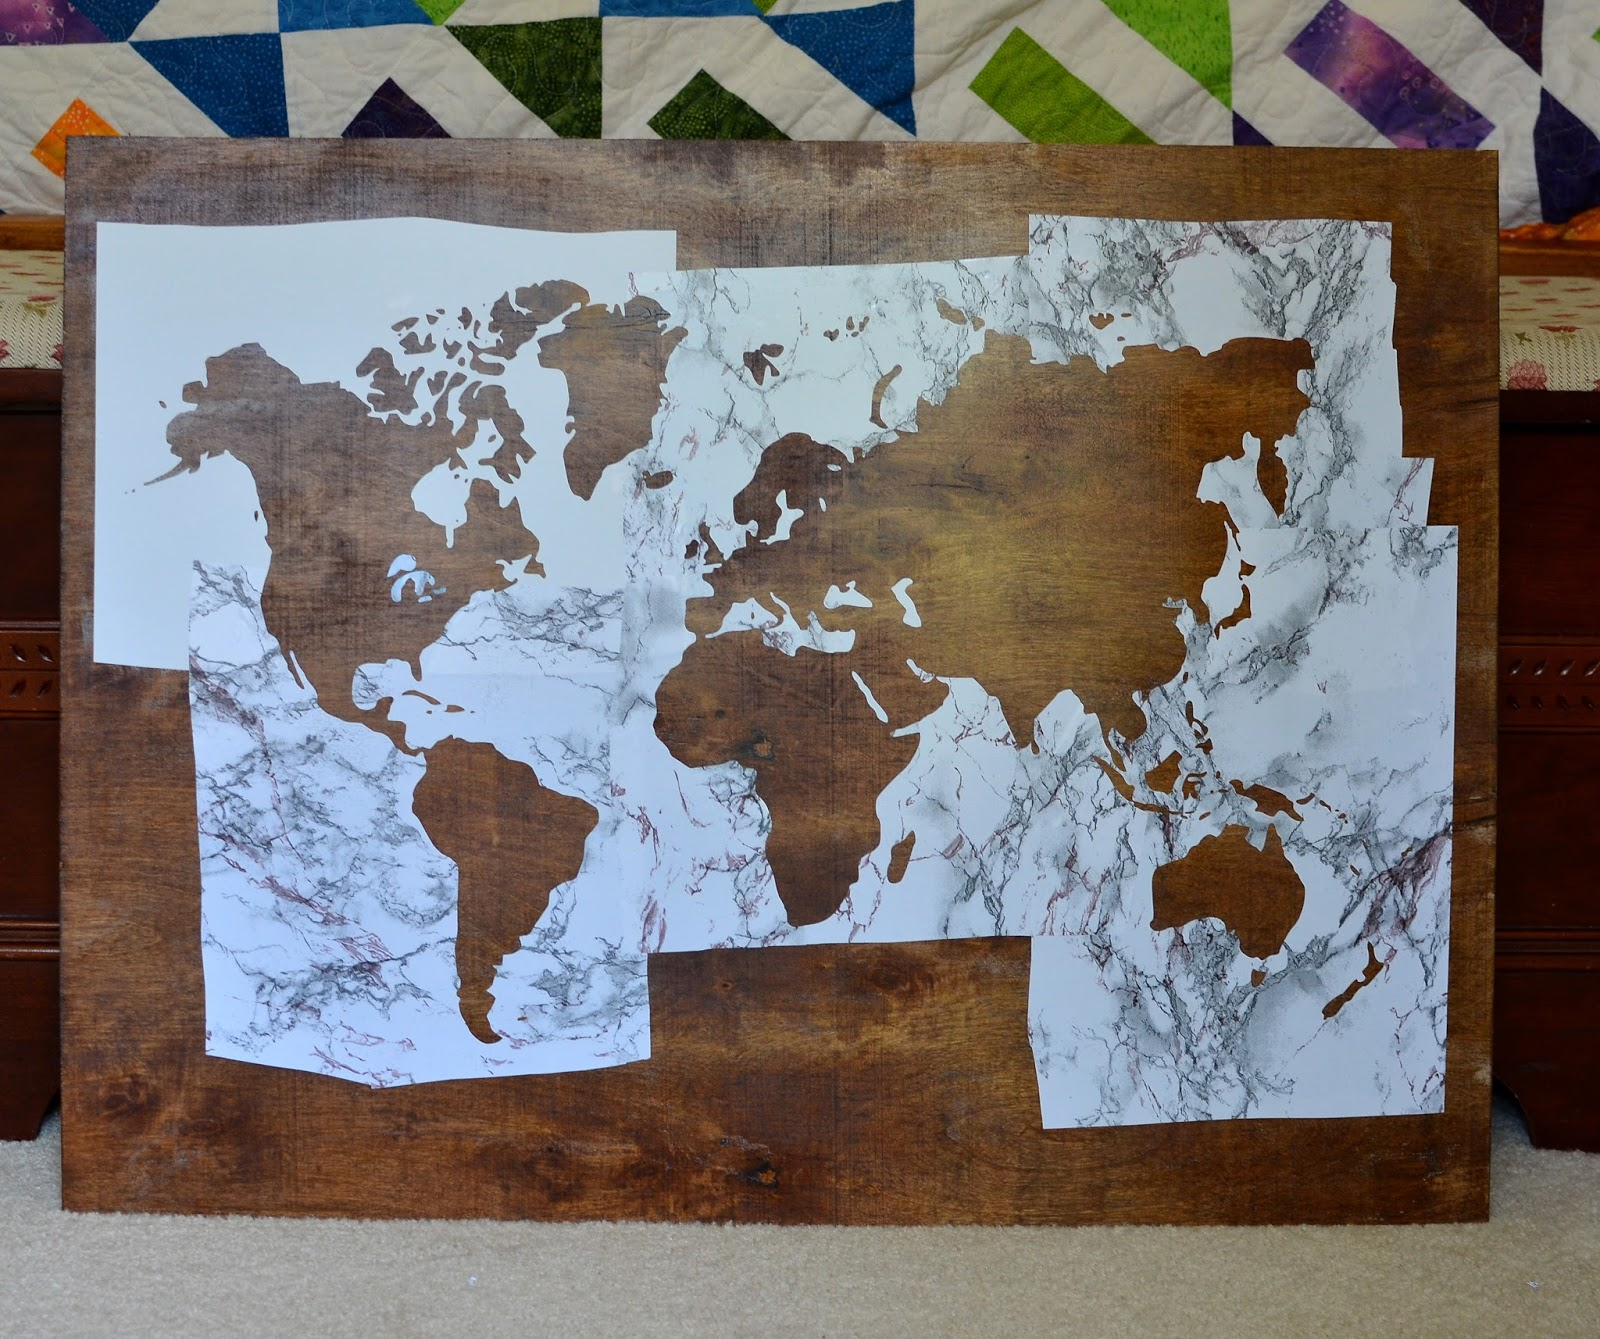 Plywood world map art may pinterest challenge sisters what plywood world map art gumiabroncs Gallery